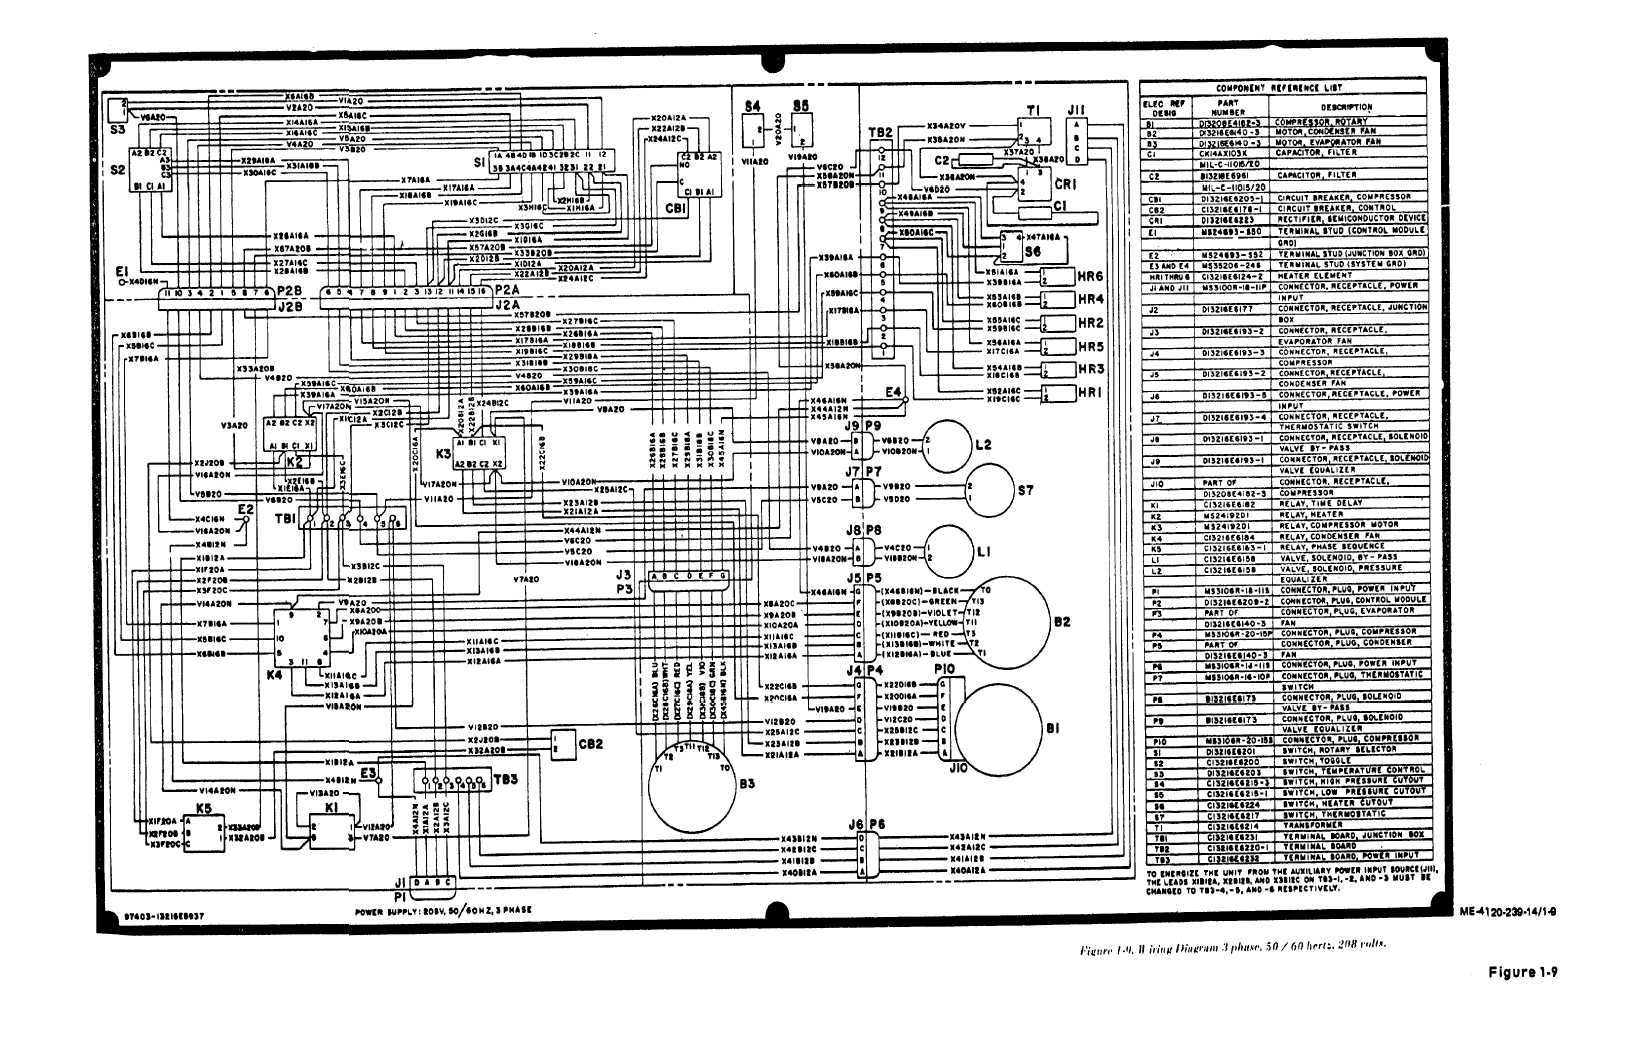 208 Industrial Wiring Diagram Library Phase Motor Figure 1 9 3 50 60 Hertz Volts Volt Single